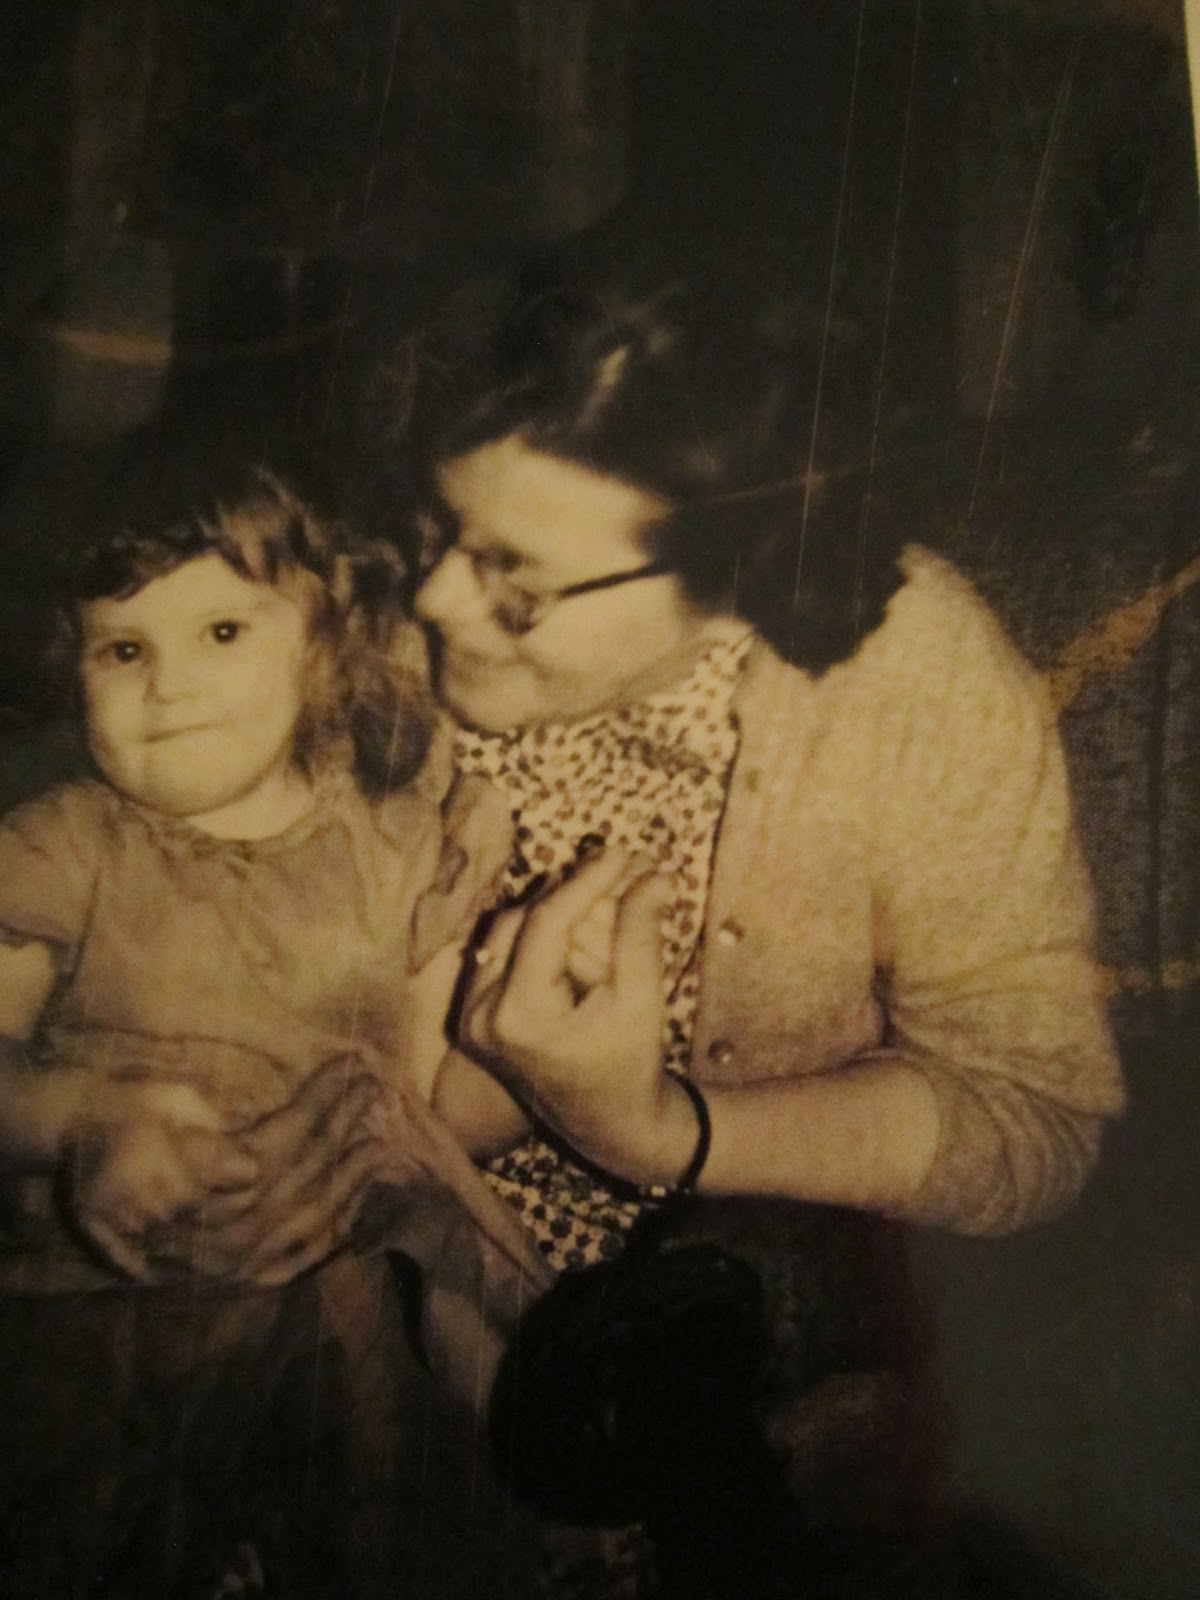 Climbing My Family Tree: Grandma Snyder (Mabel Lere Erwin Snyder) and me